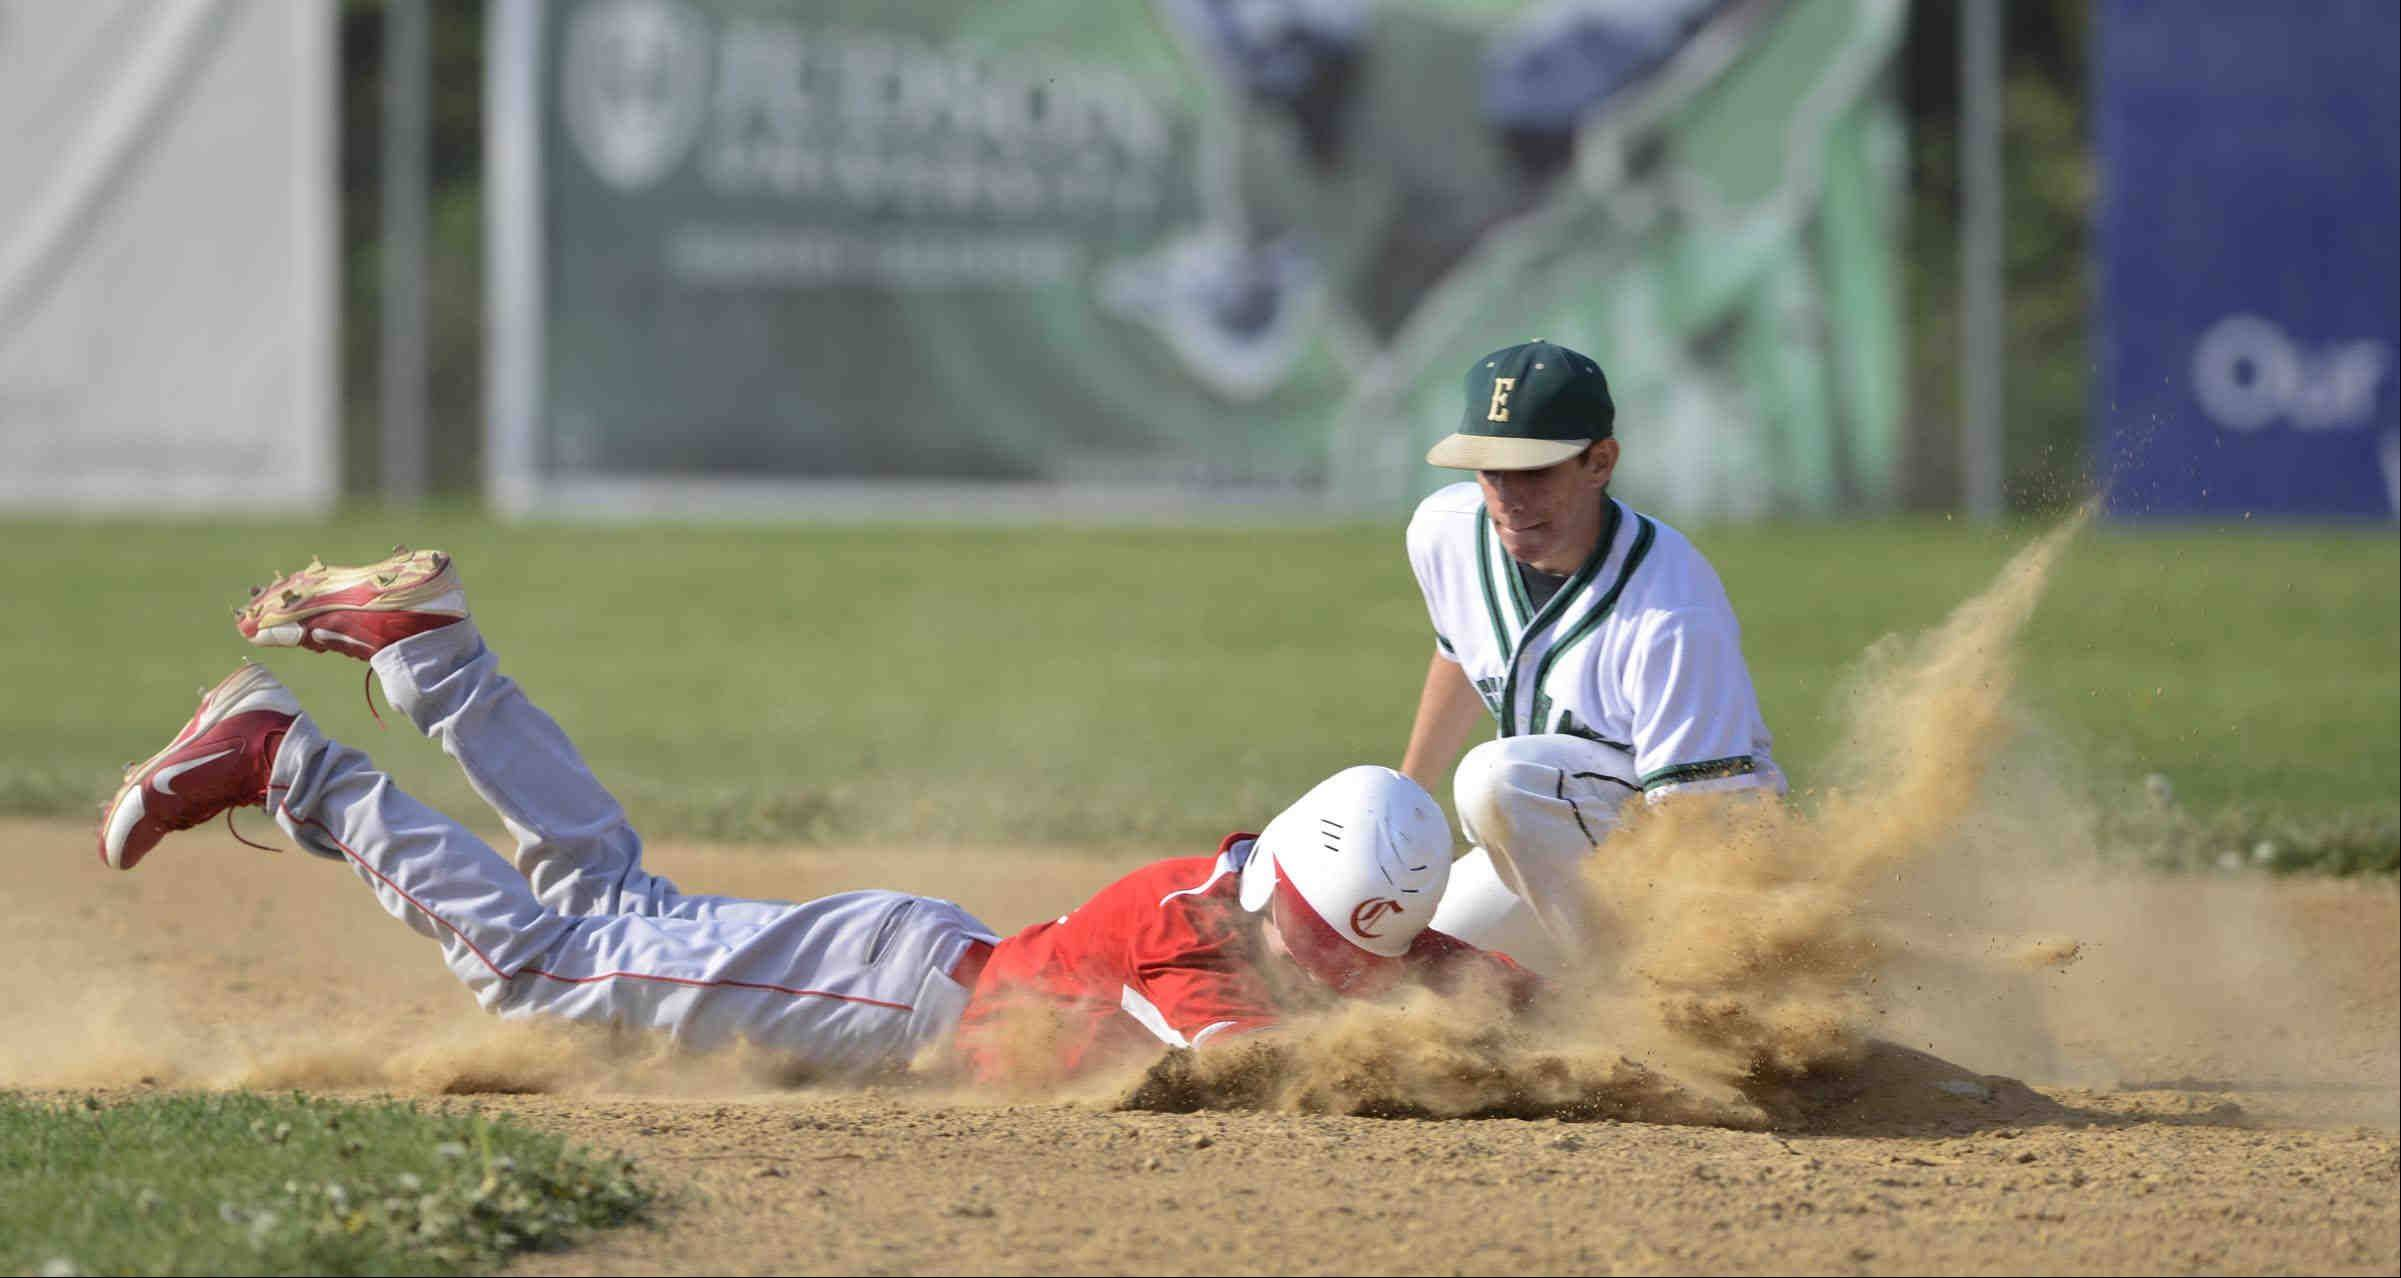 Aurora Christian's Ian Livingston dives into the dirt to reach second base safely as St. Edward shortstop Antonio Domel reaches in to tag him on the pick off play Thursday in the 2A Regional game in Elgin.